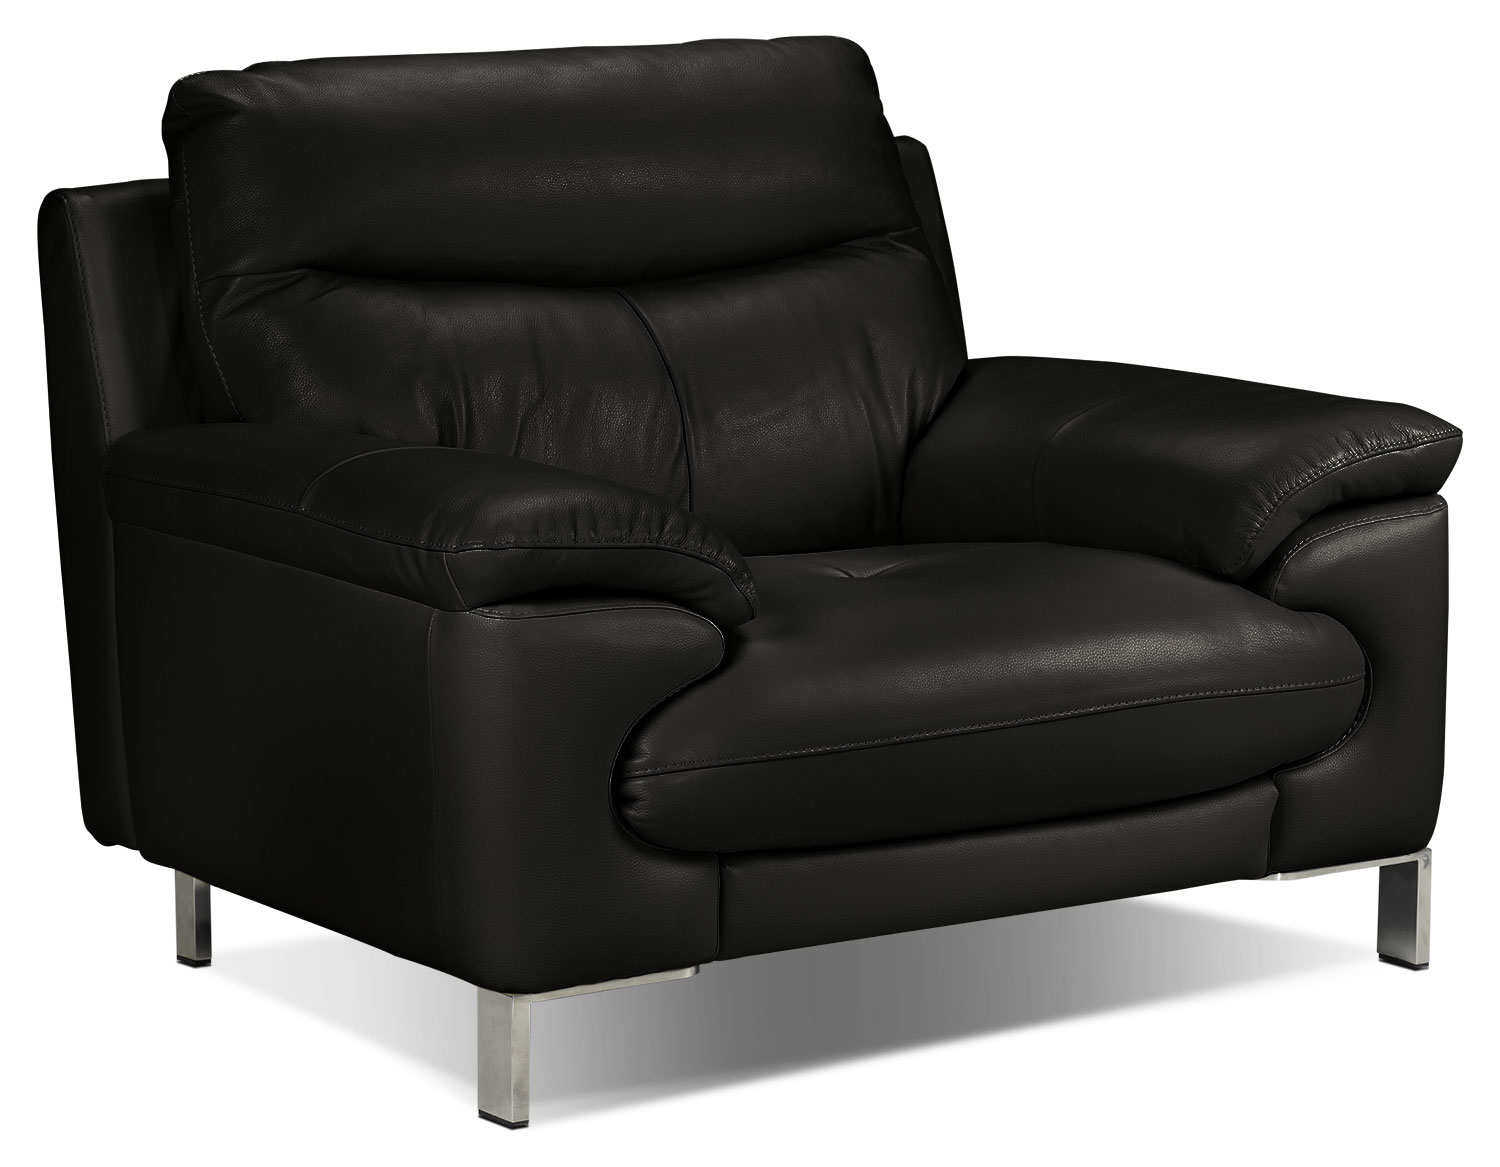 Living Room Furniture - Anika Chair - Black